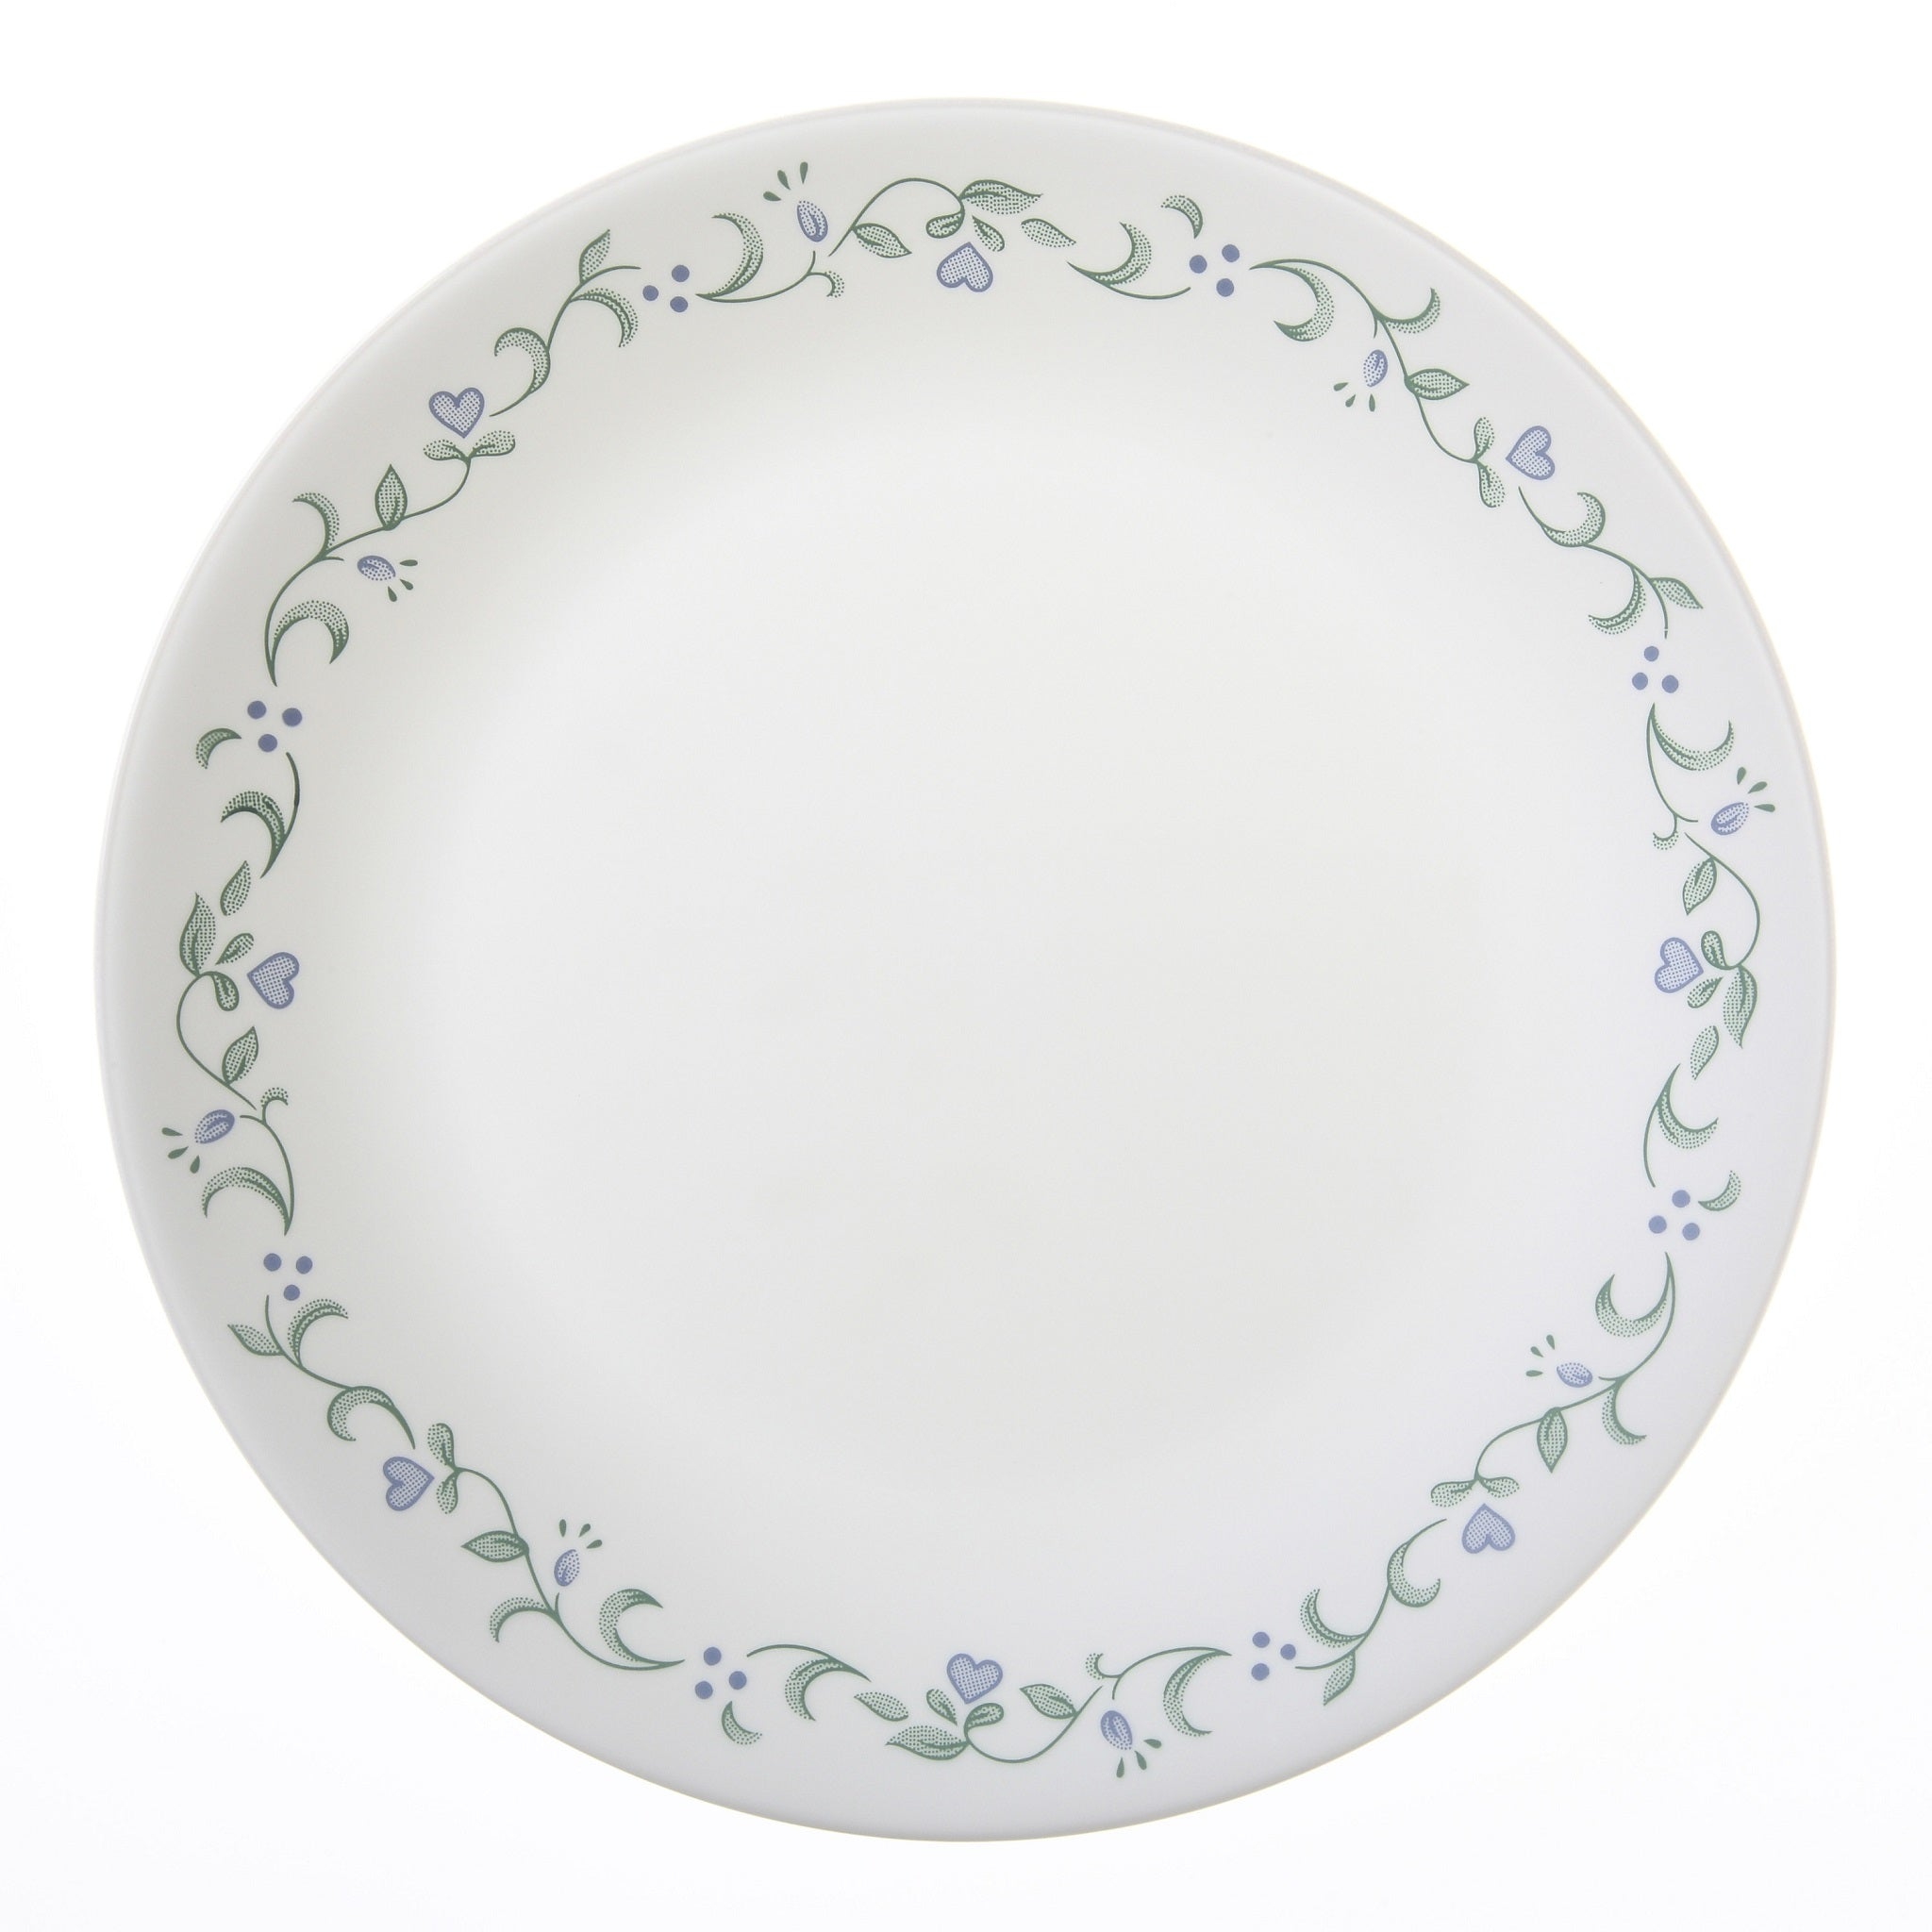 Corelle Classic Country Cottage 17cm Bread & Butter Plate-6018488